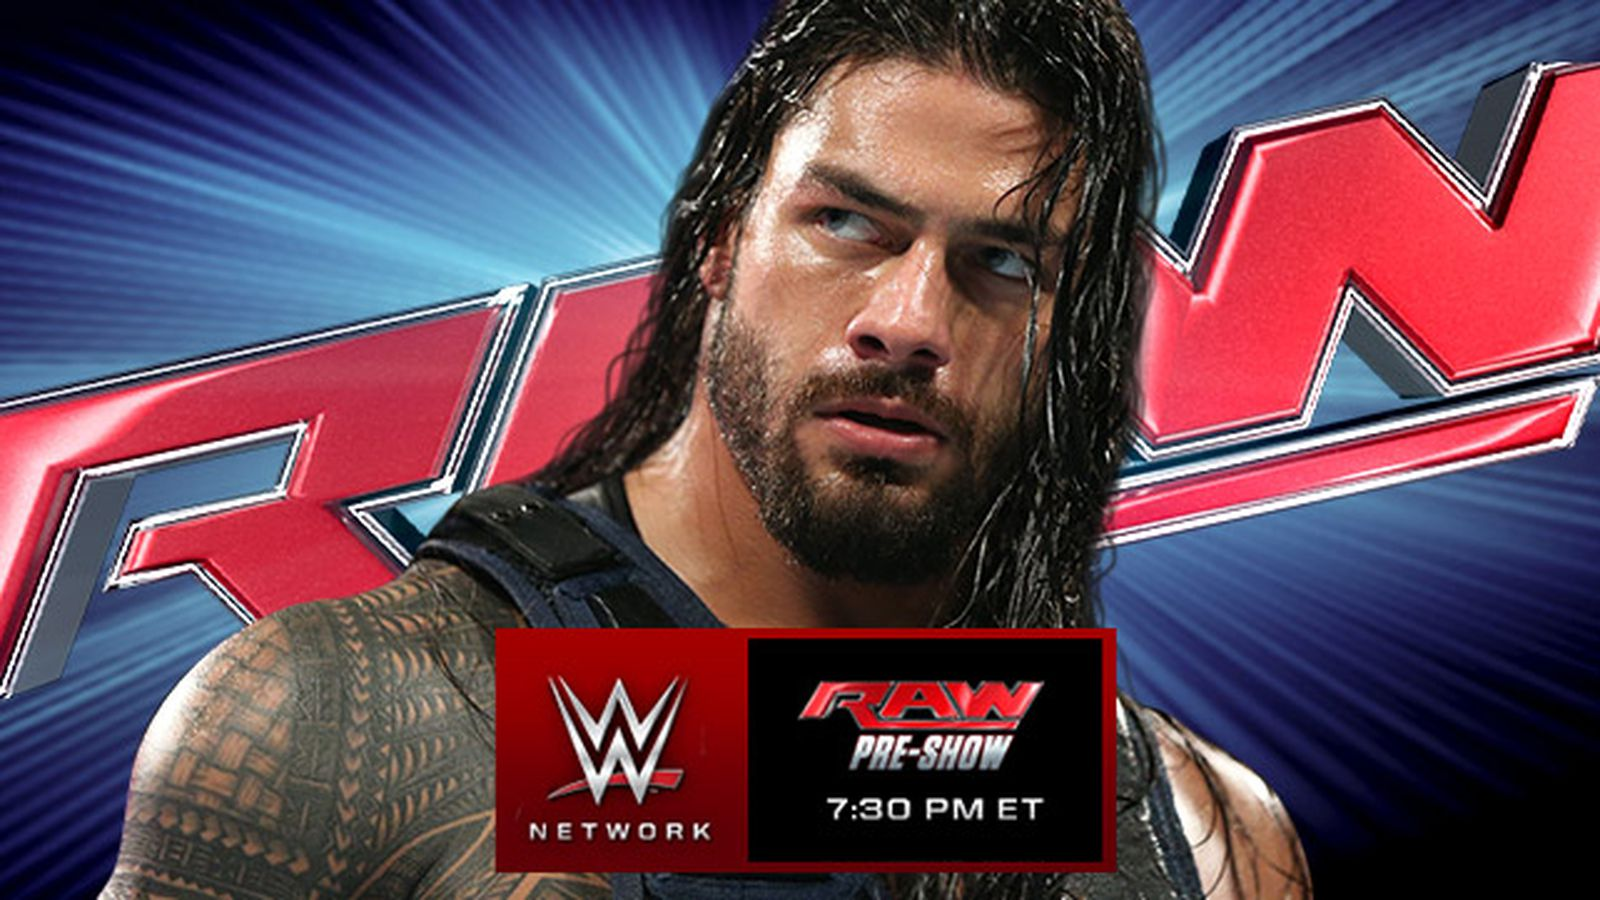 Wwe Raw Results Live Blog Oct 6 2014 Roman Reigns